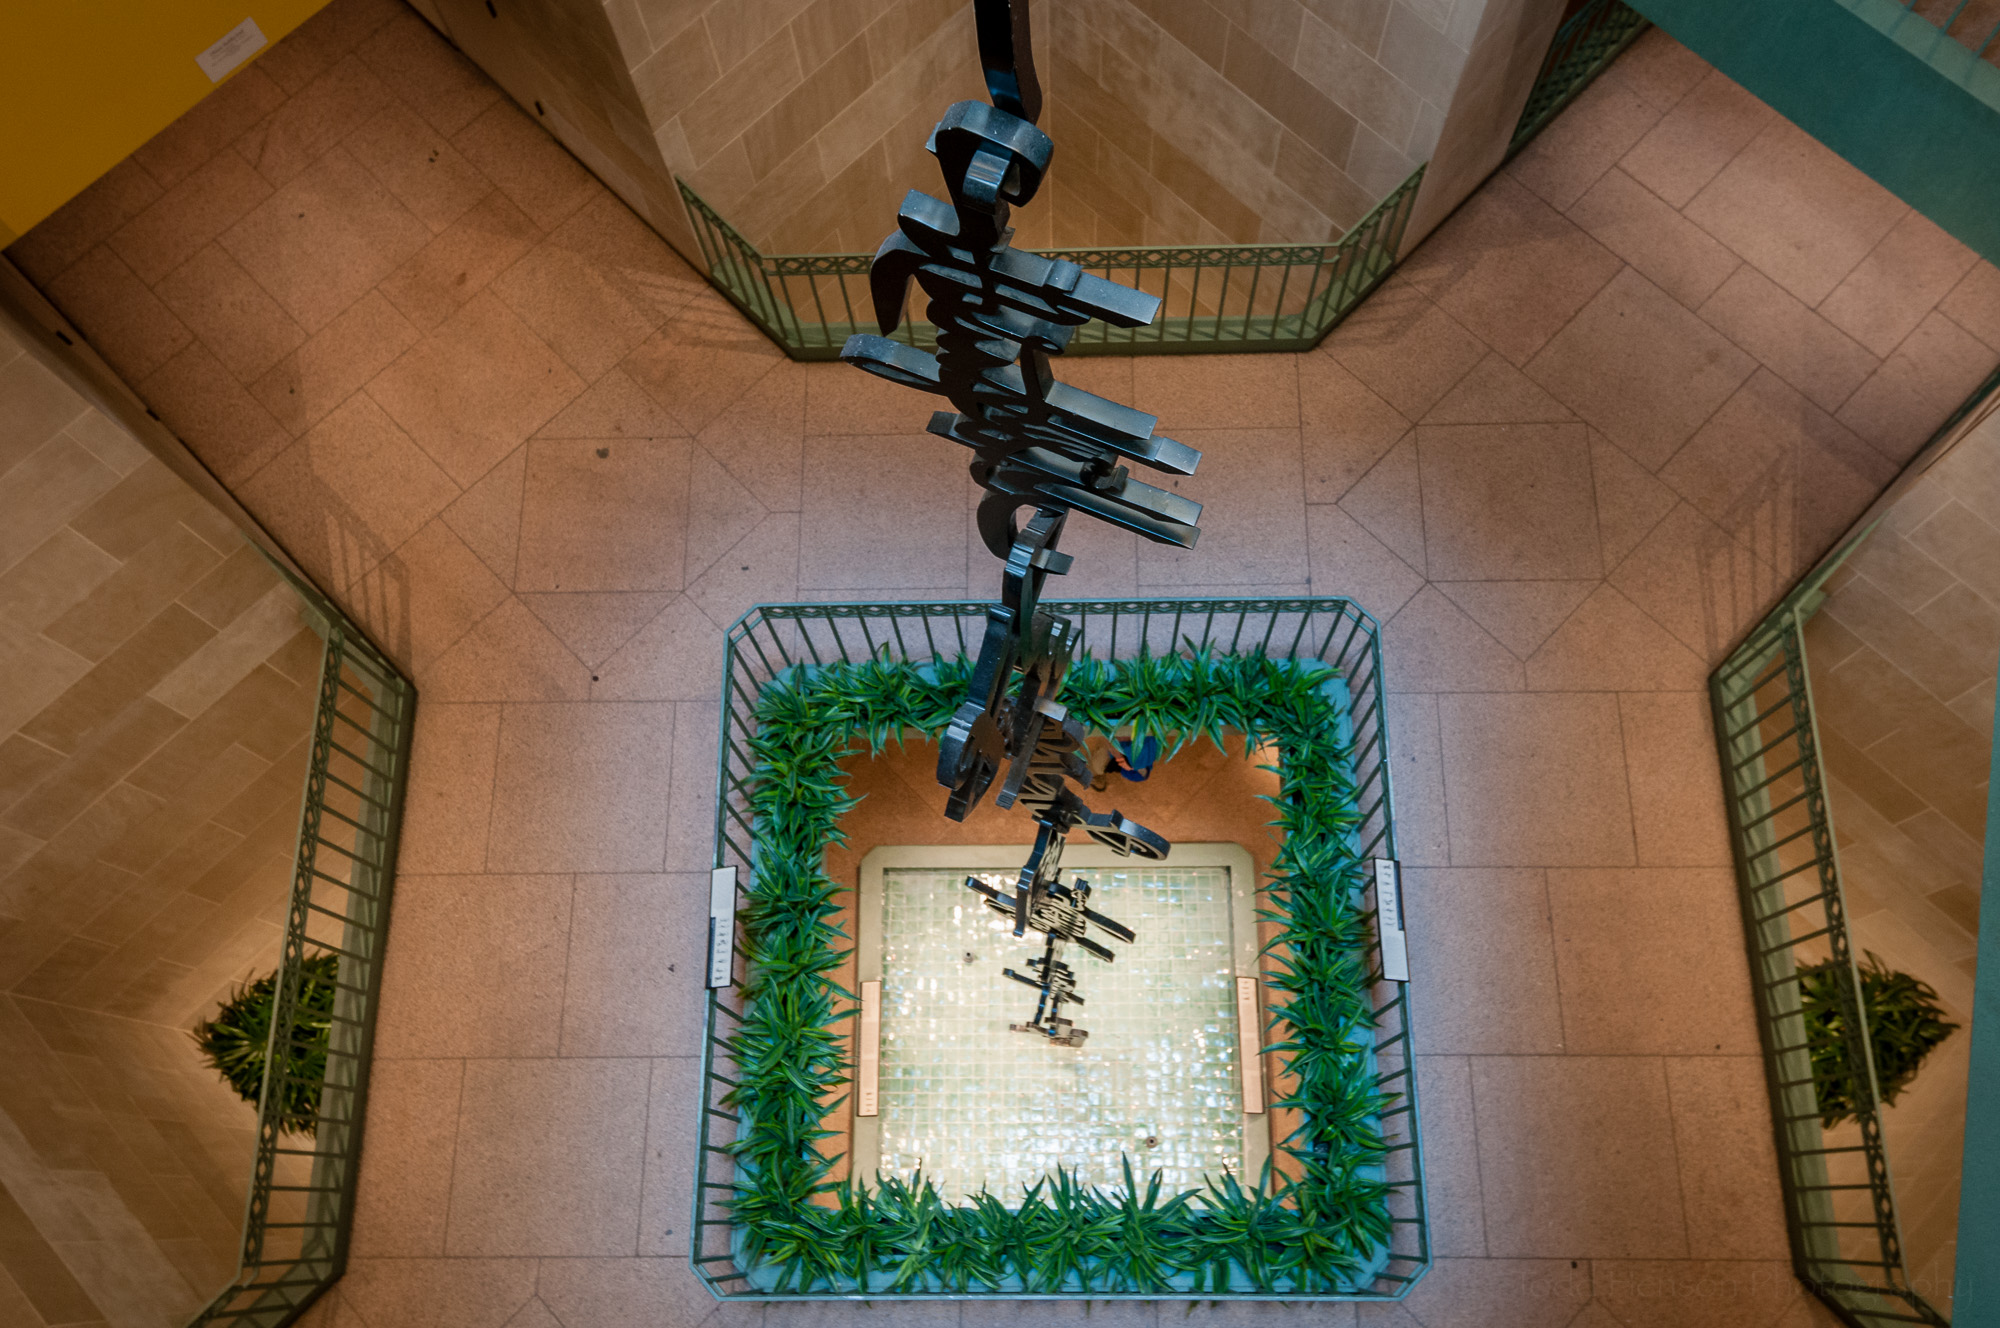 Looking down at  Monkeys Grasp for the Moon  by Xu Bing in the Sackler Gallery